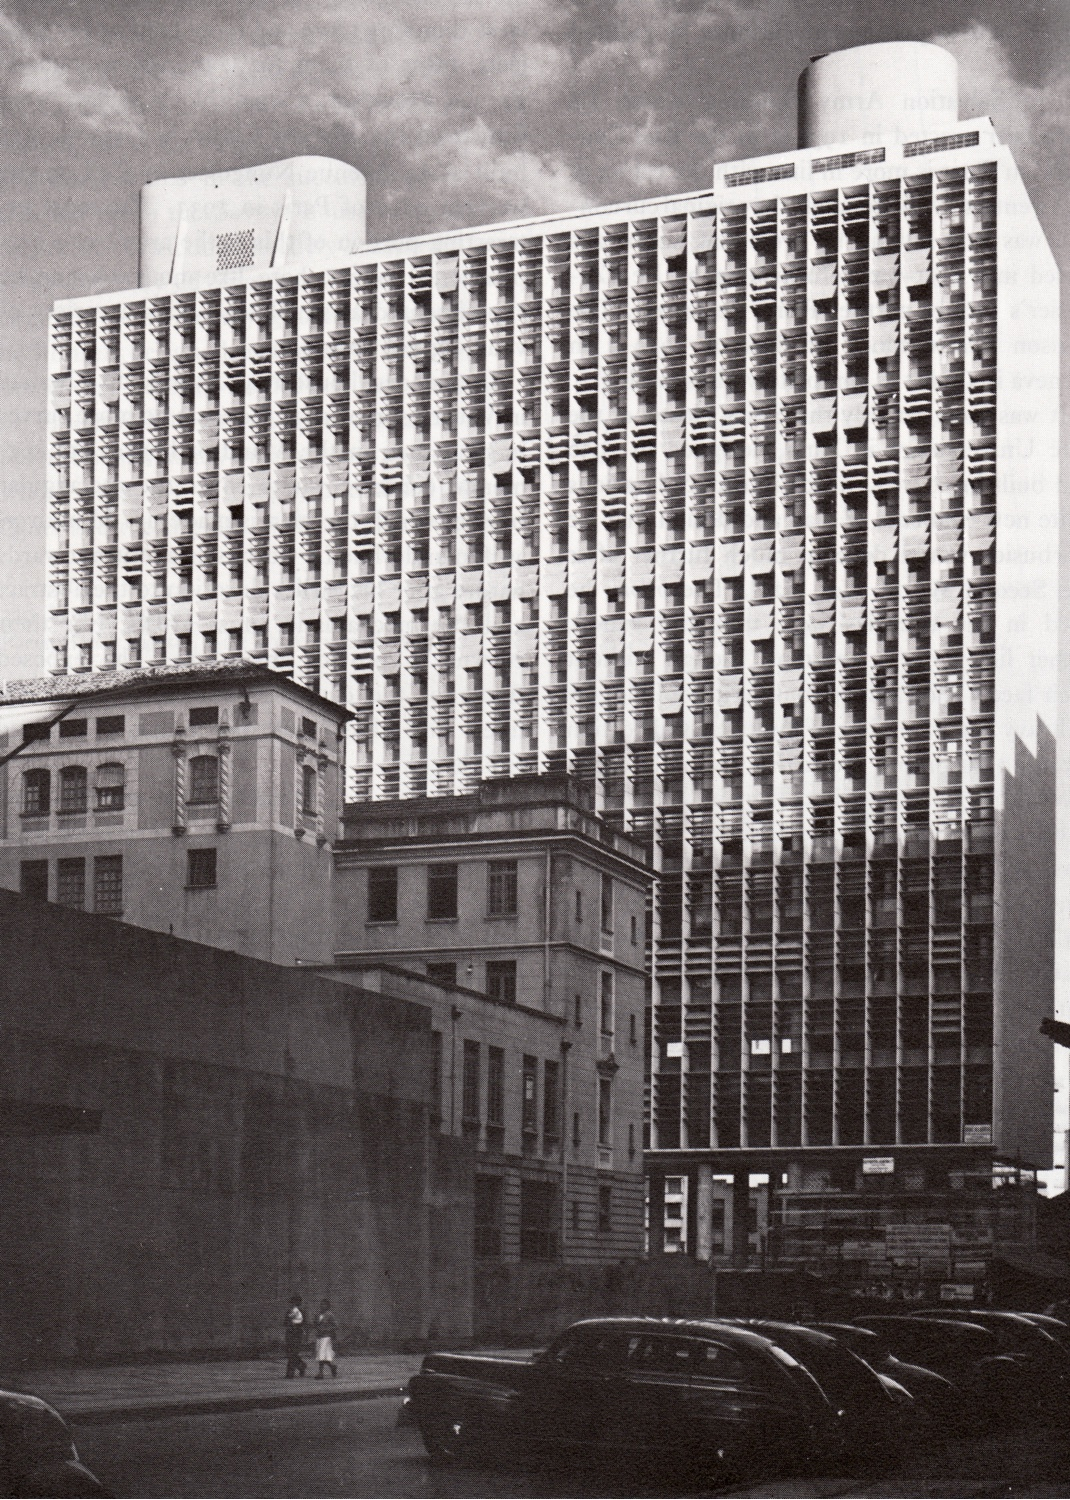 Ministry of Education and Health Building or Palácio Gustavo Capanema. Image via Miguel Martín Graduate Thesis Blog.